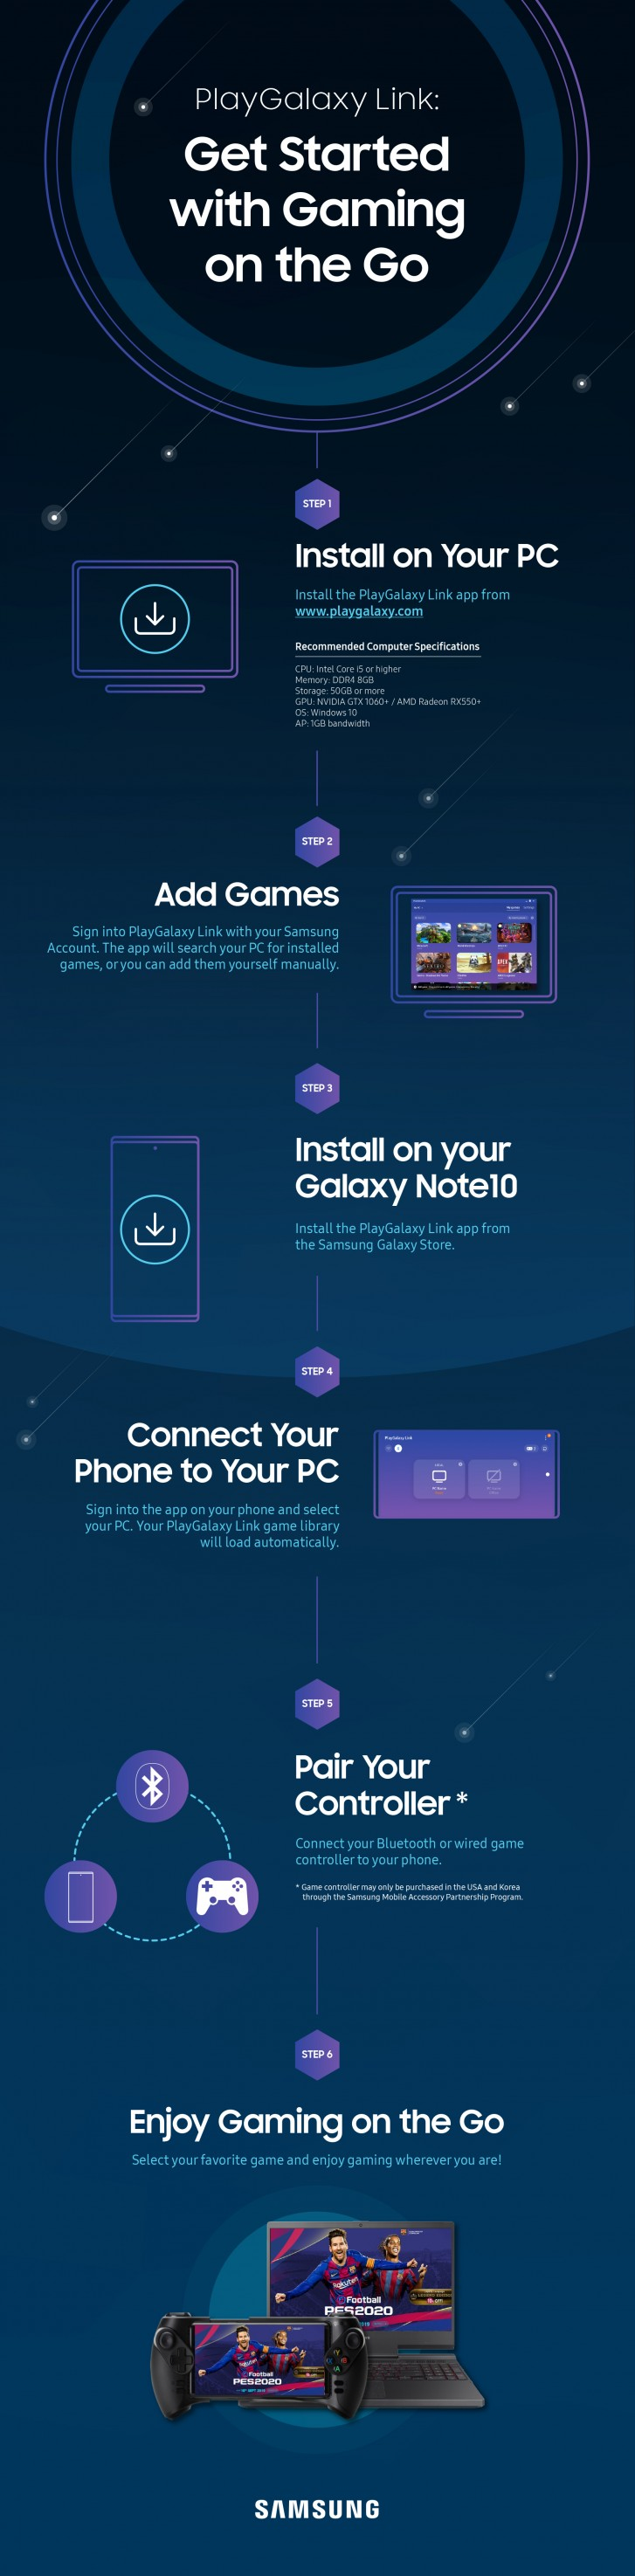 PlayGalaxy Link beta goes live for Galaxy S10 and Note 10 users in select countries